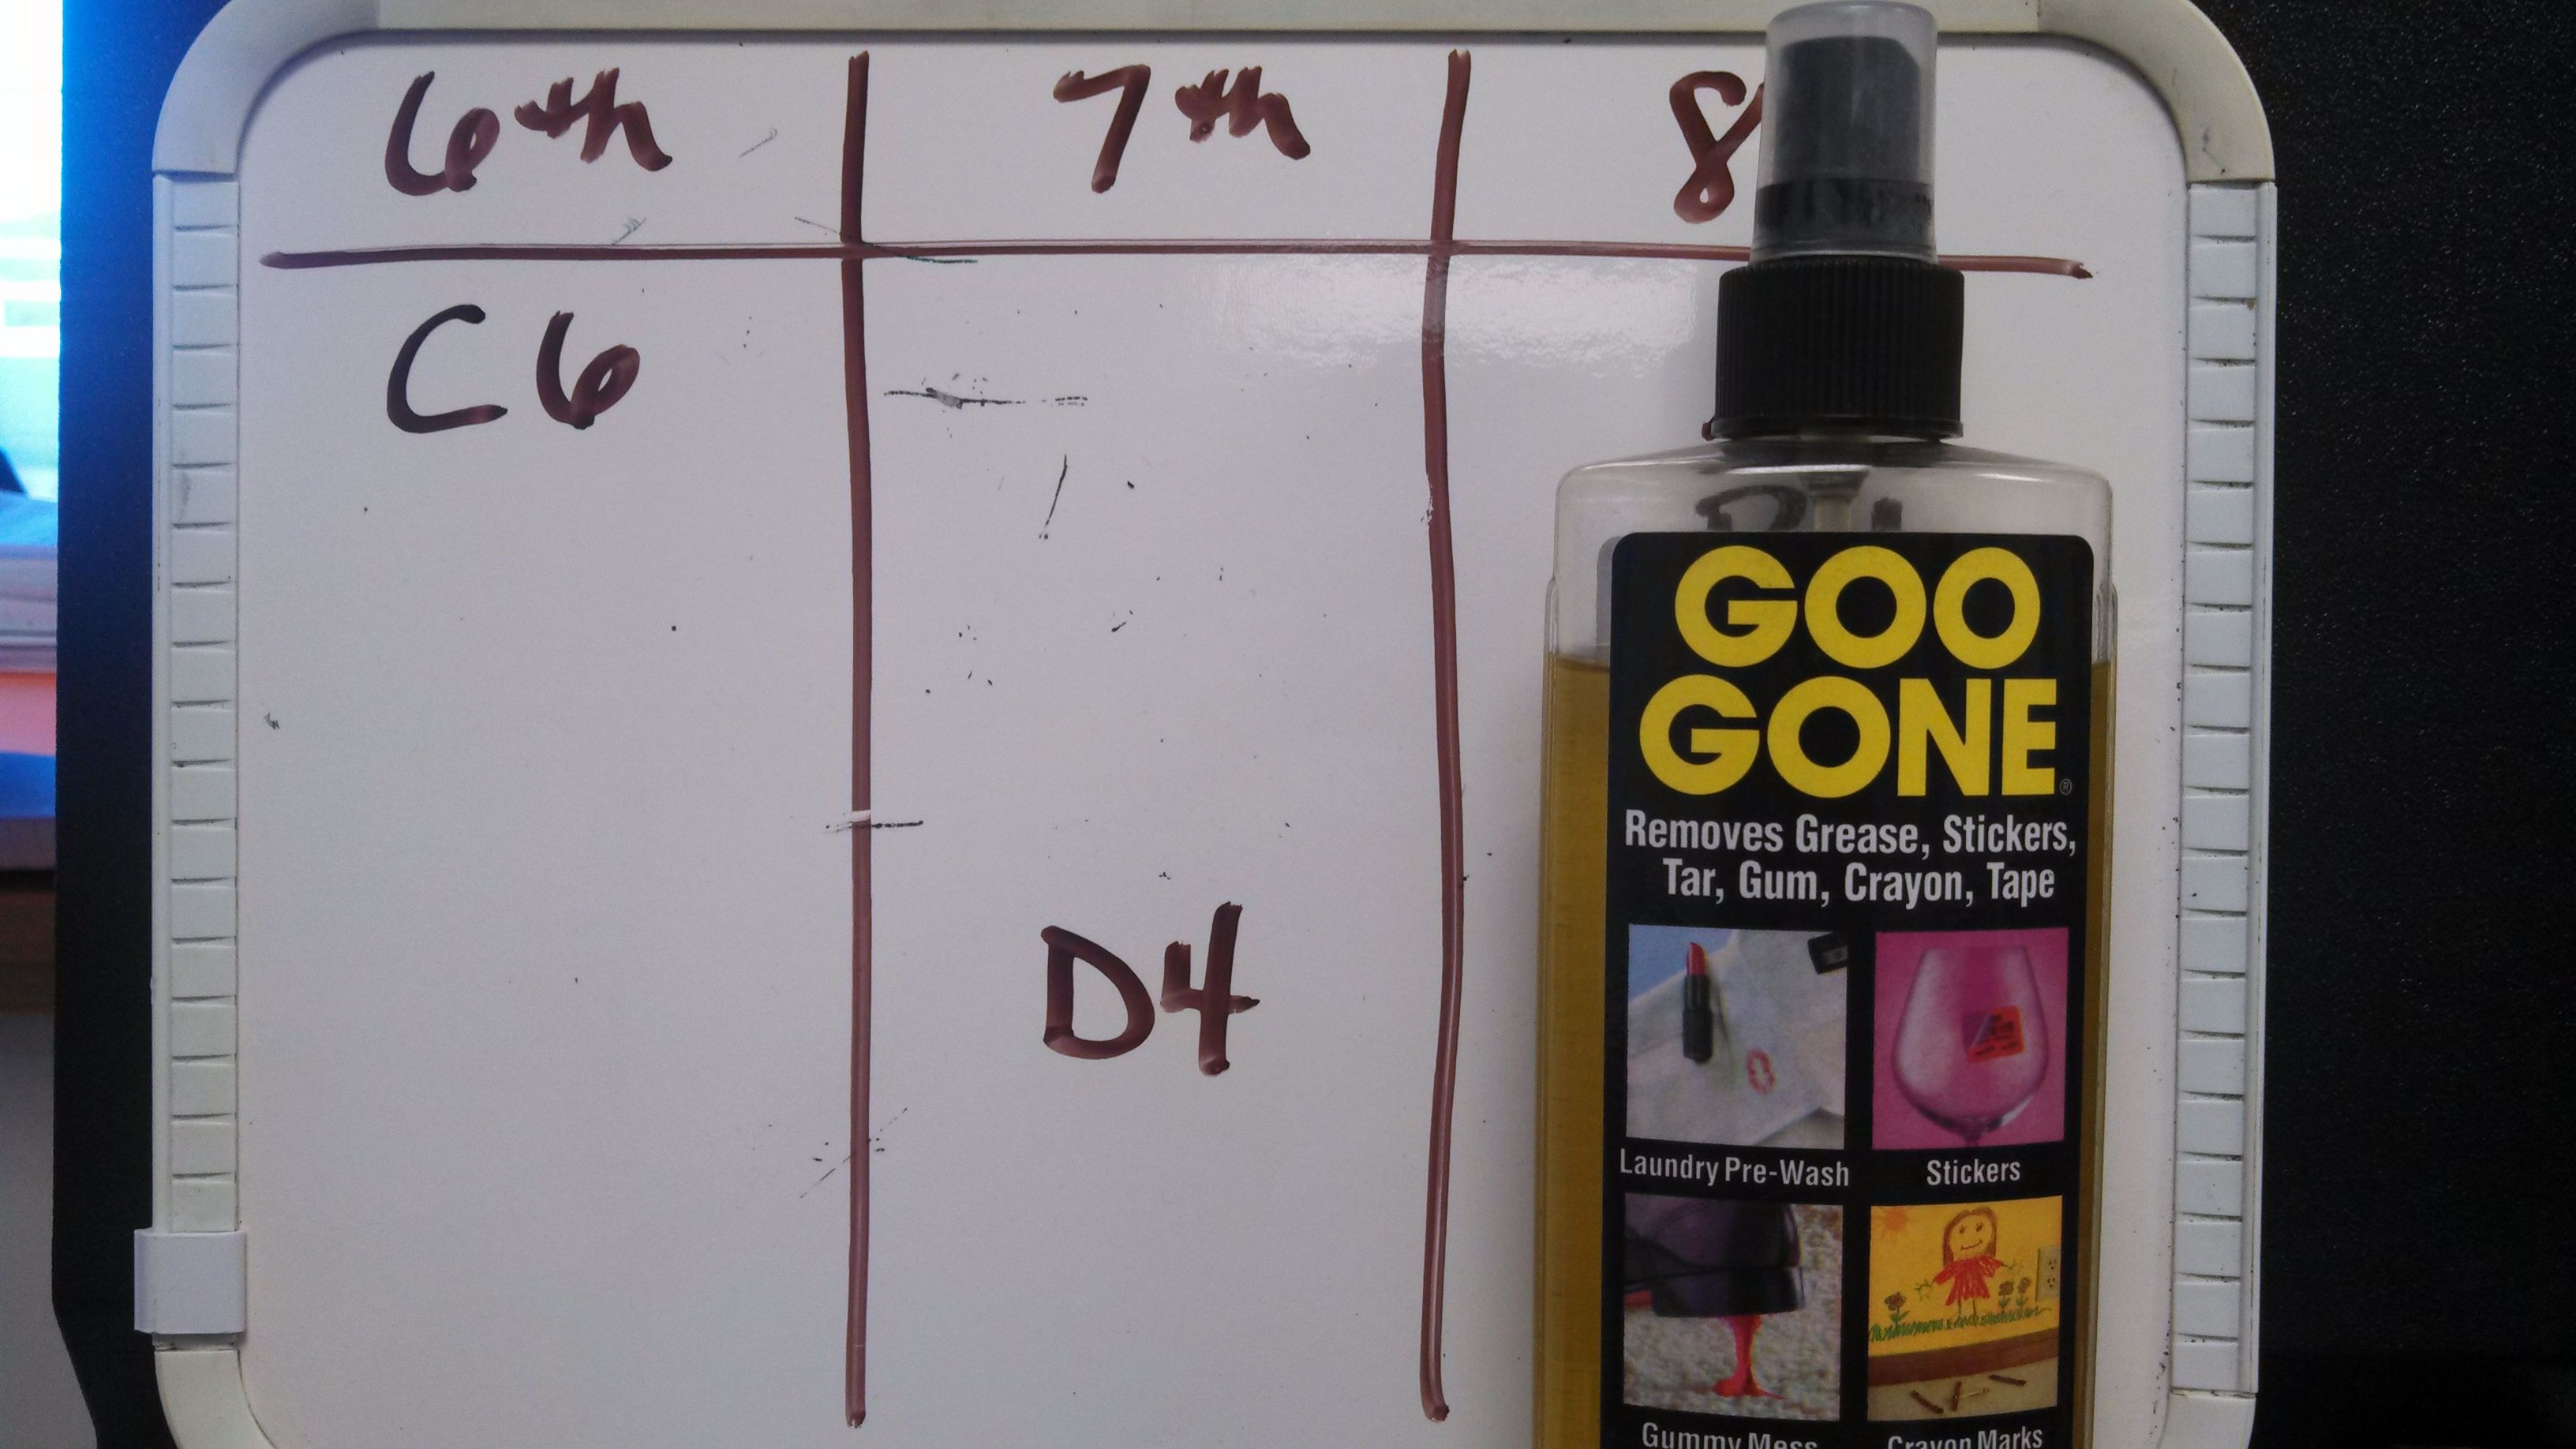 Use Goo Gone To Revive Tired Whiteboards When Your Whiteboard No Longer Wipes Clean Give It A Good Cleaning With Whiteboard Cleaning Wipes Goo Gone Cleaning